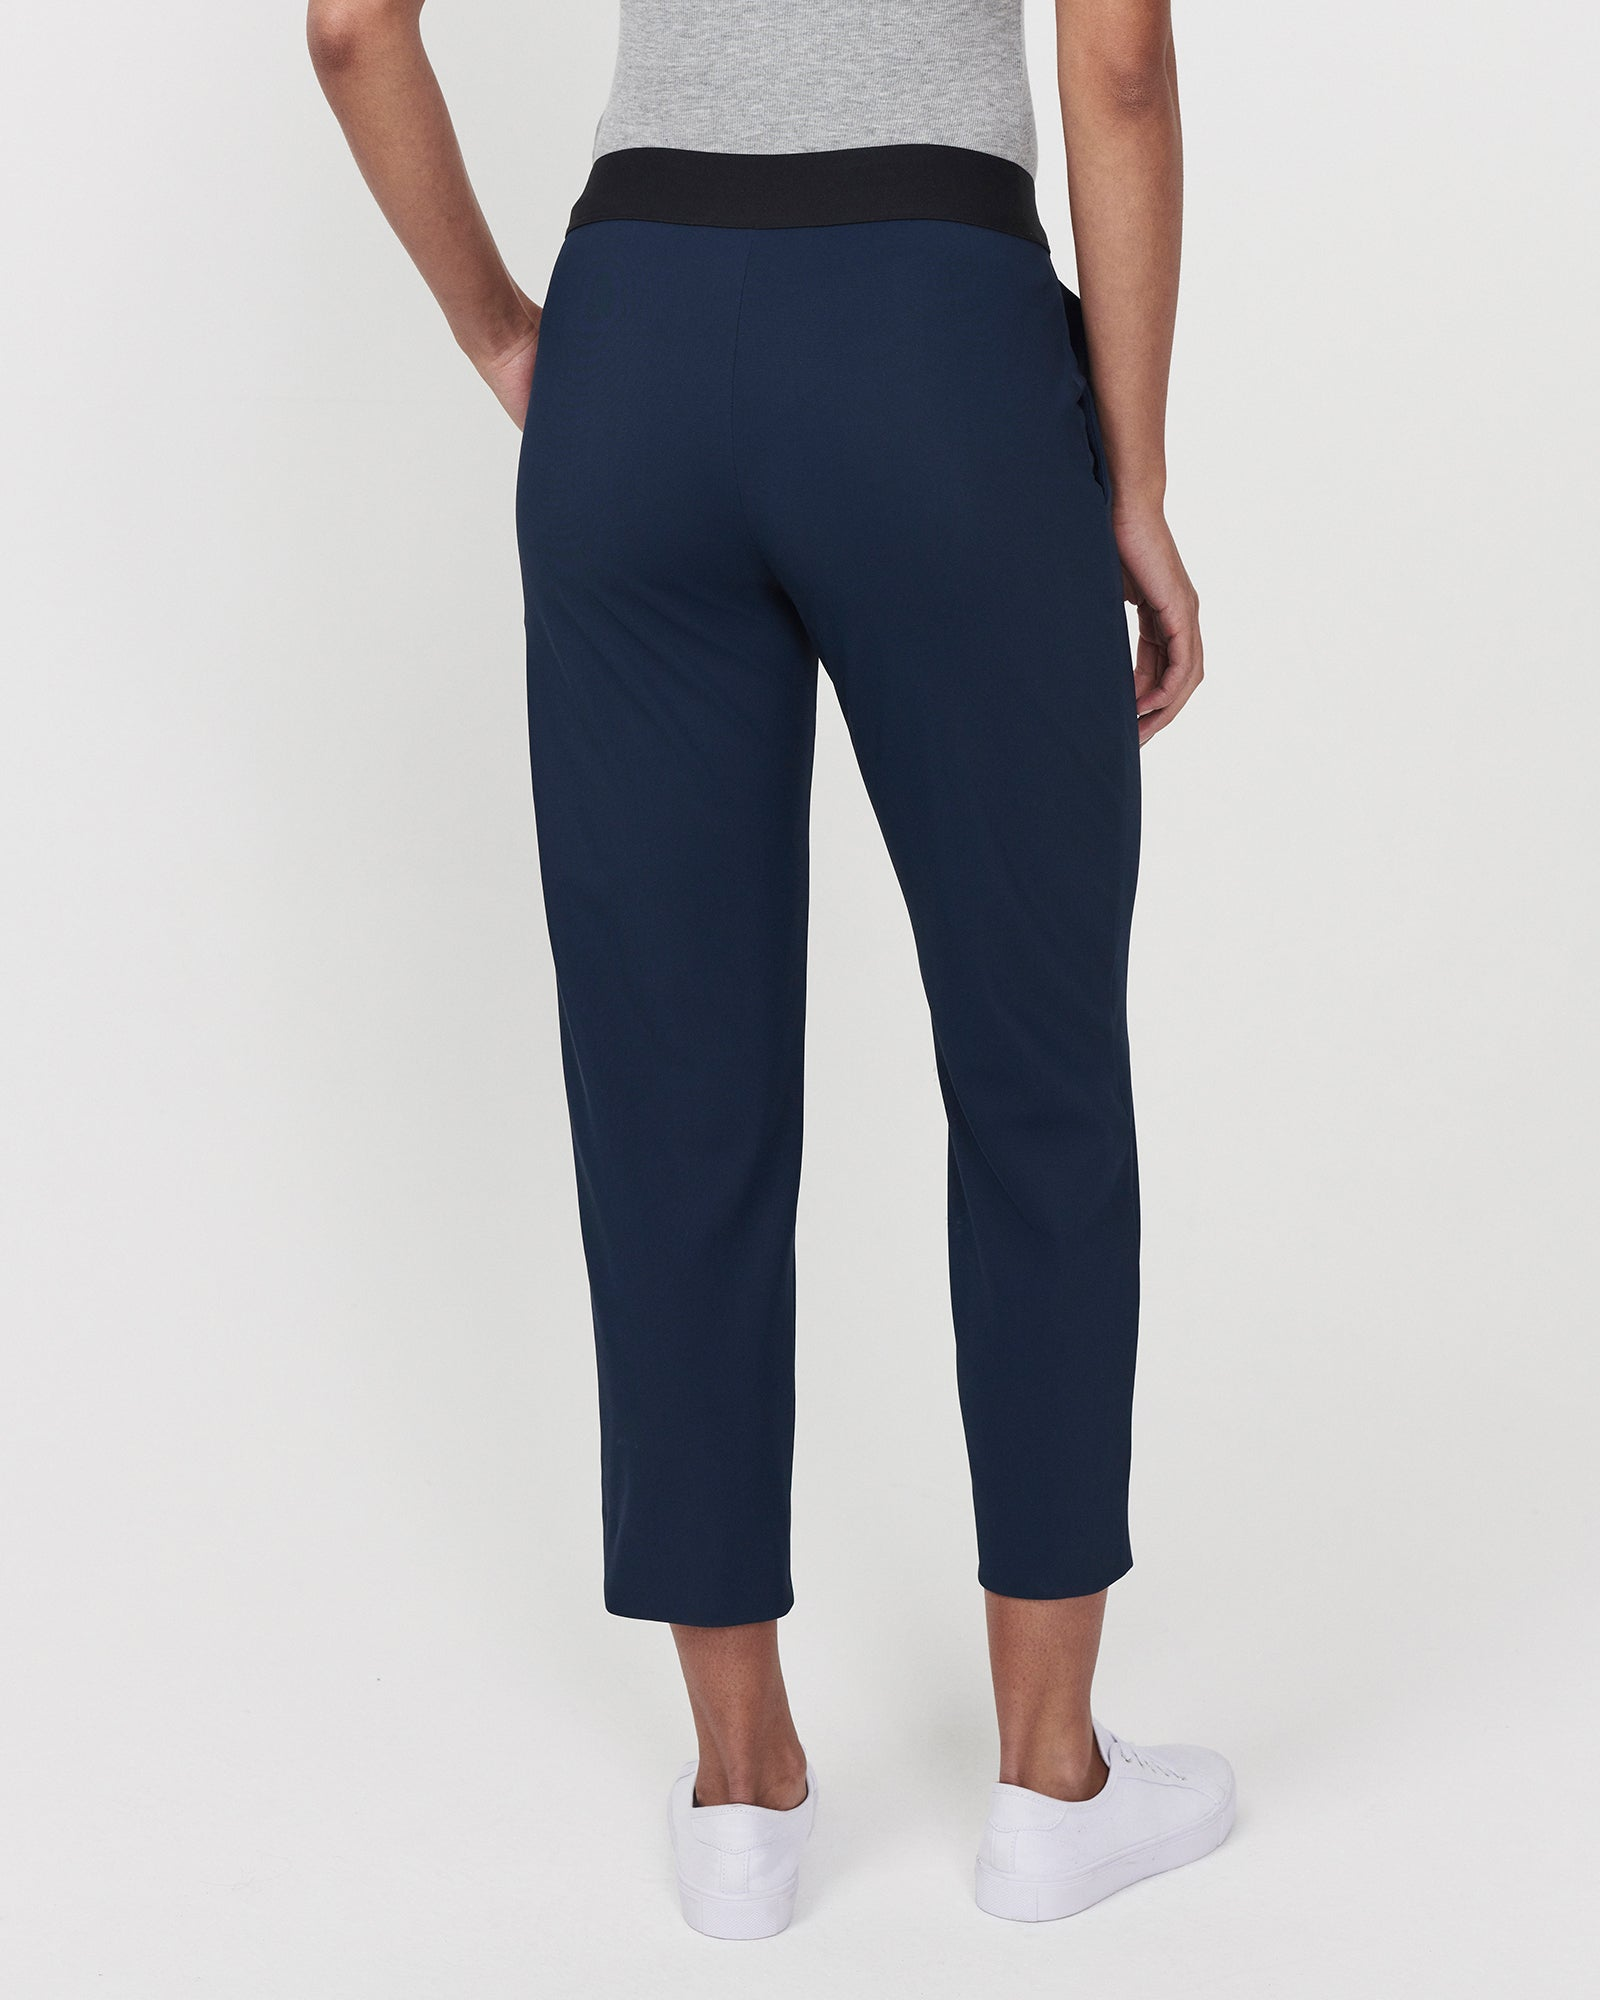 Freedom Jogger Regatta Navy